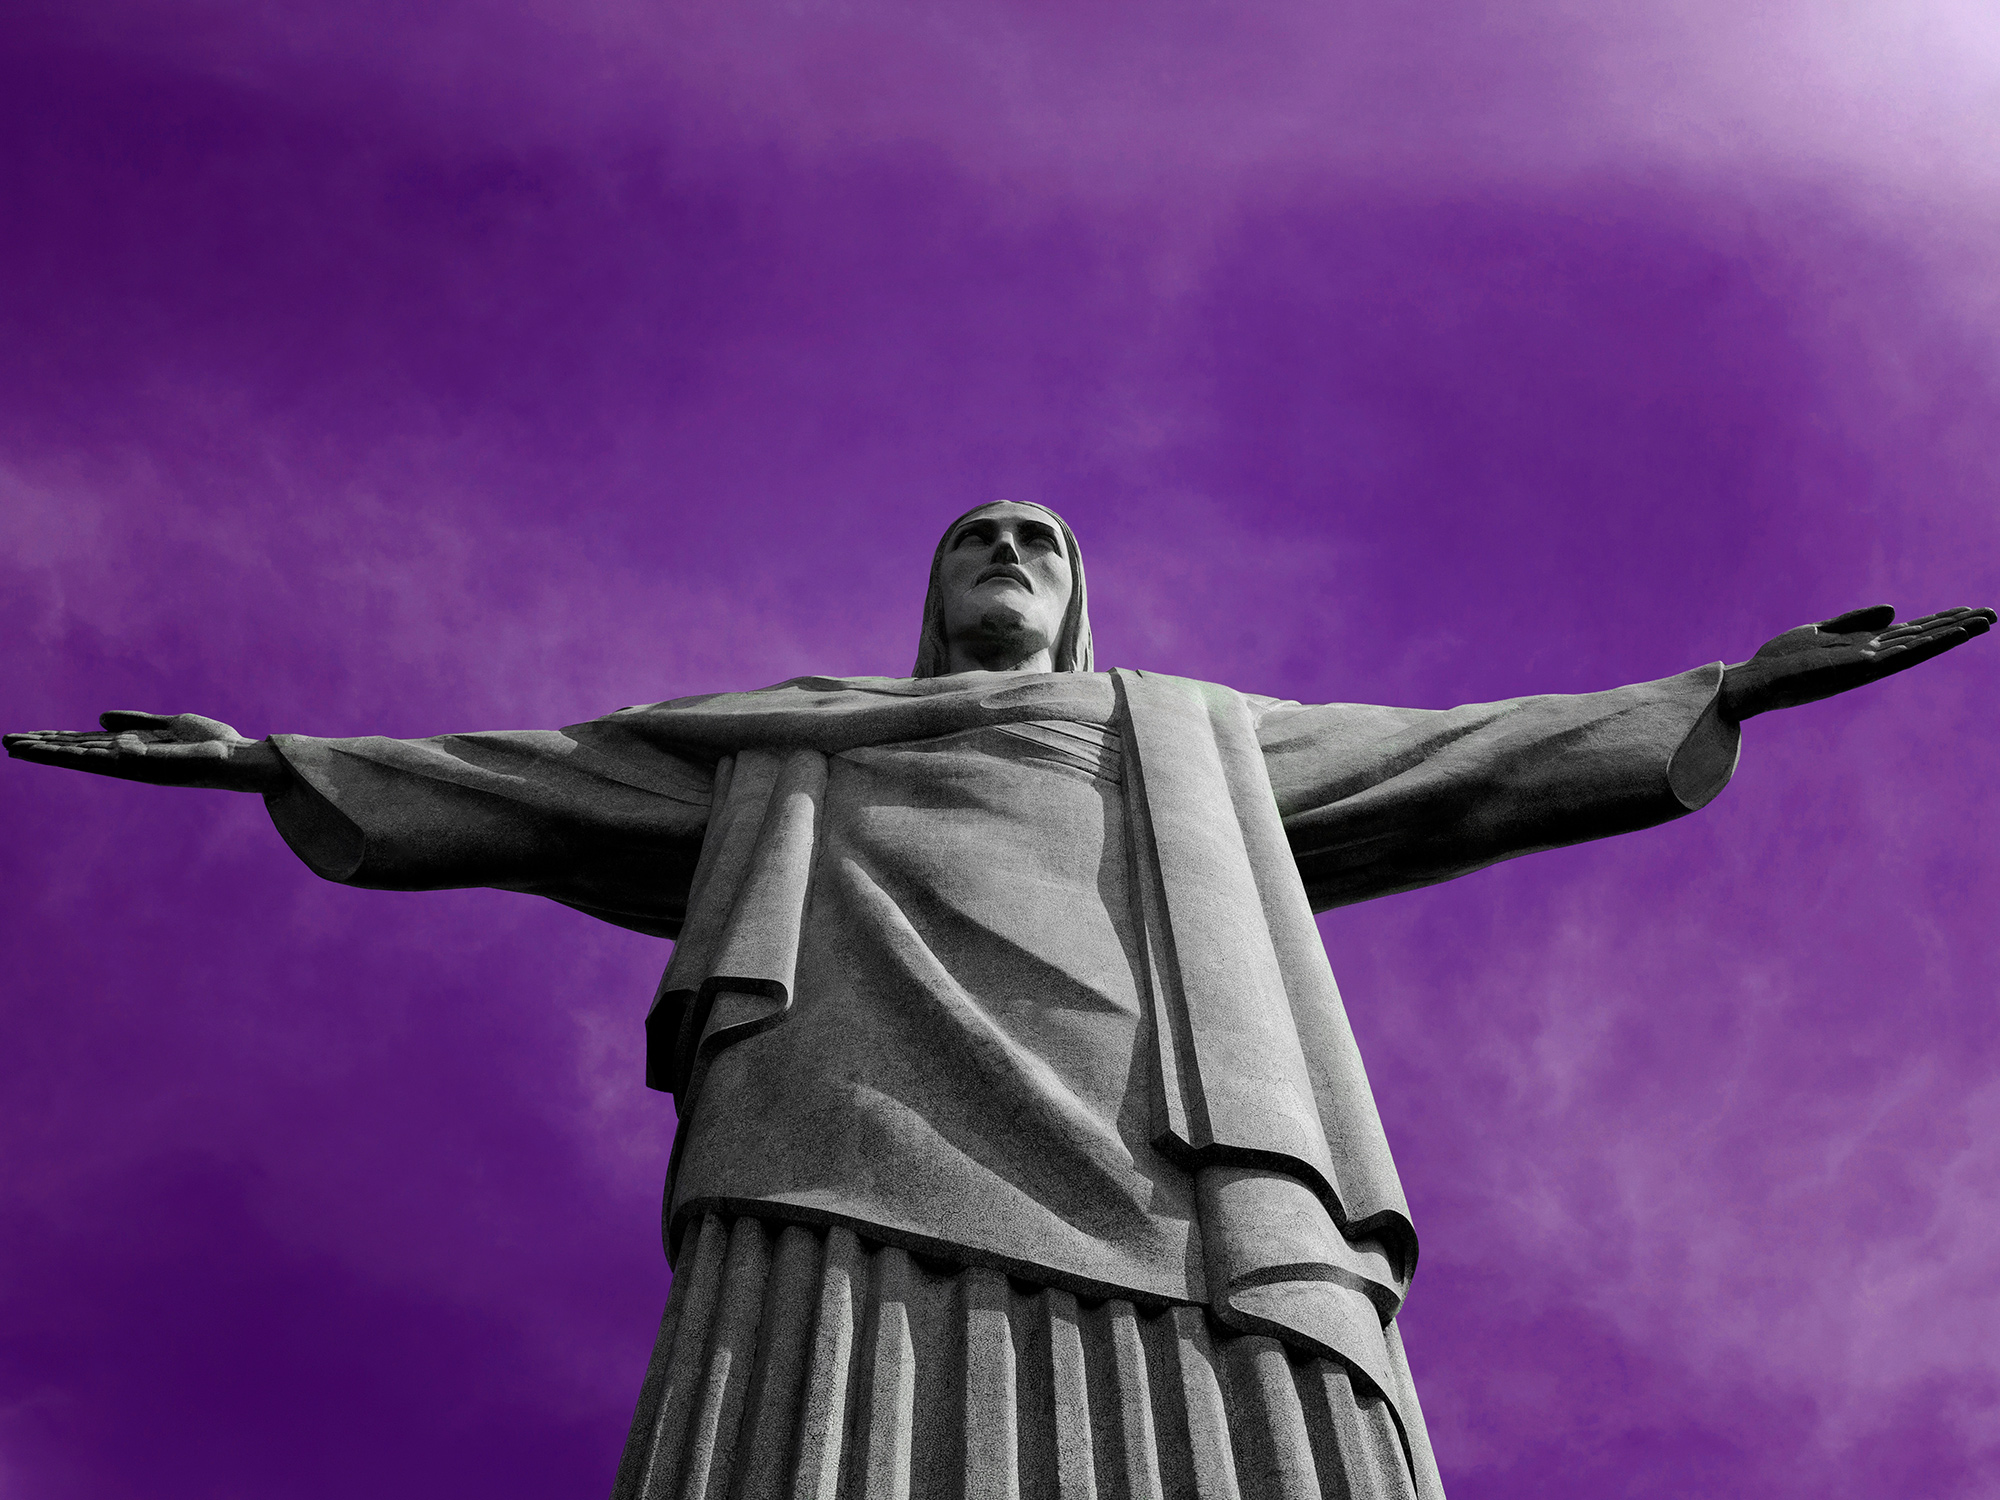 A detail of the Christ The Redeemer statue in Rio de Janeiro, Brazil, photographed by photographer, Todd Spoth.